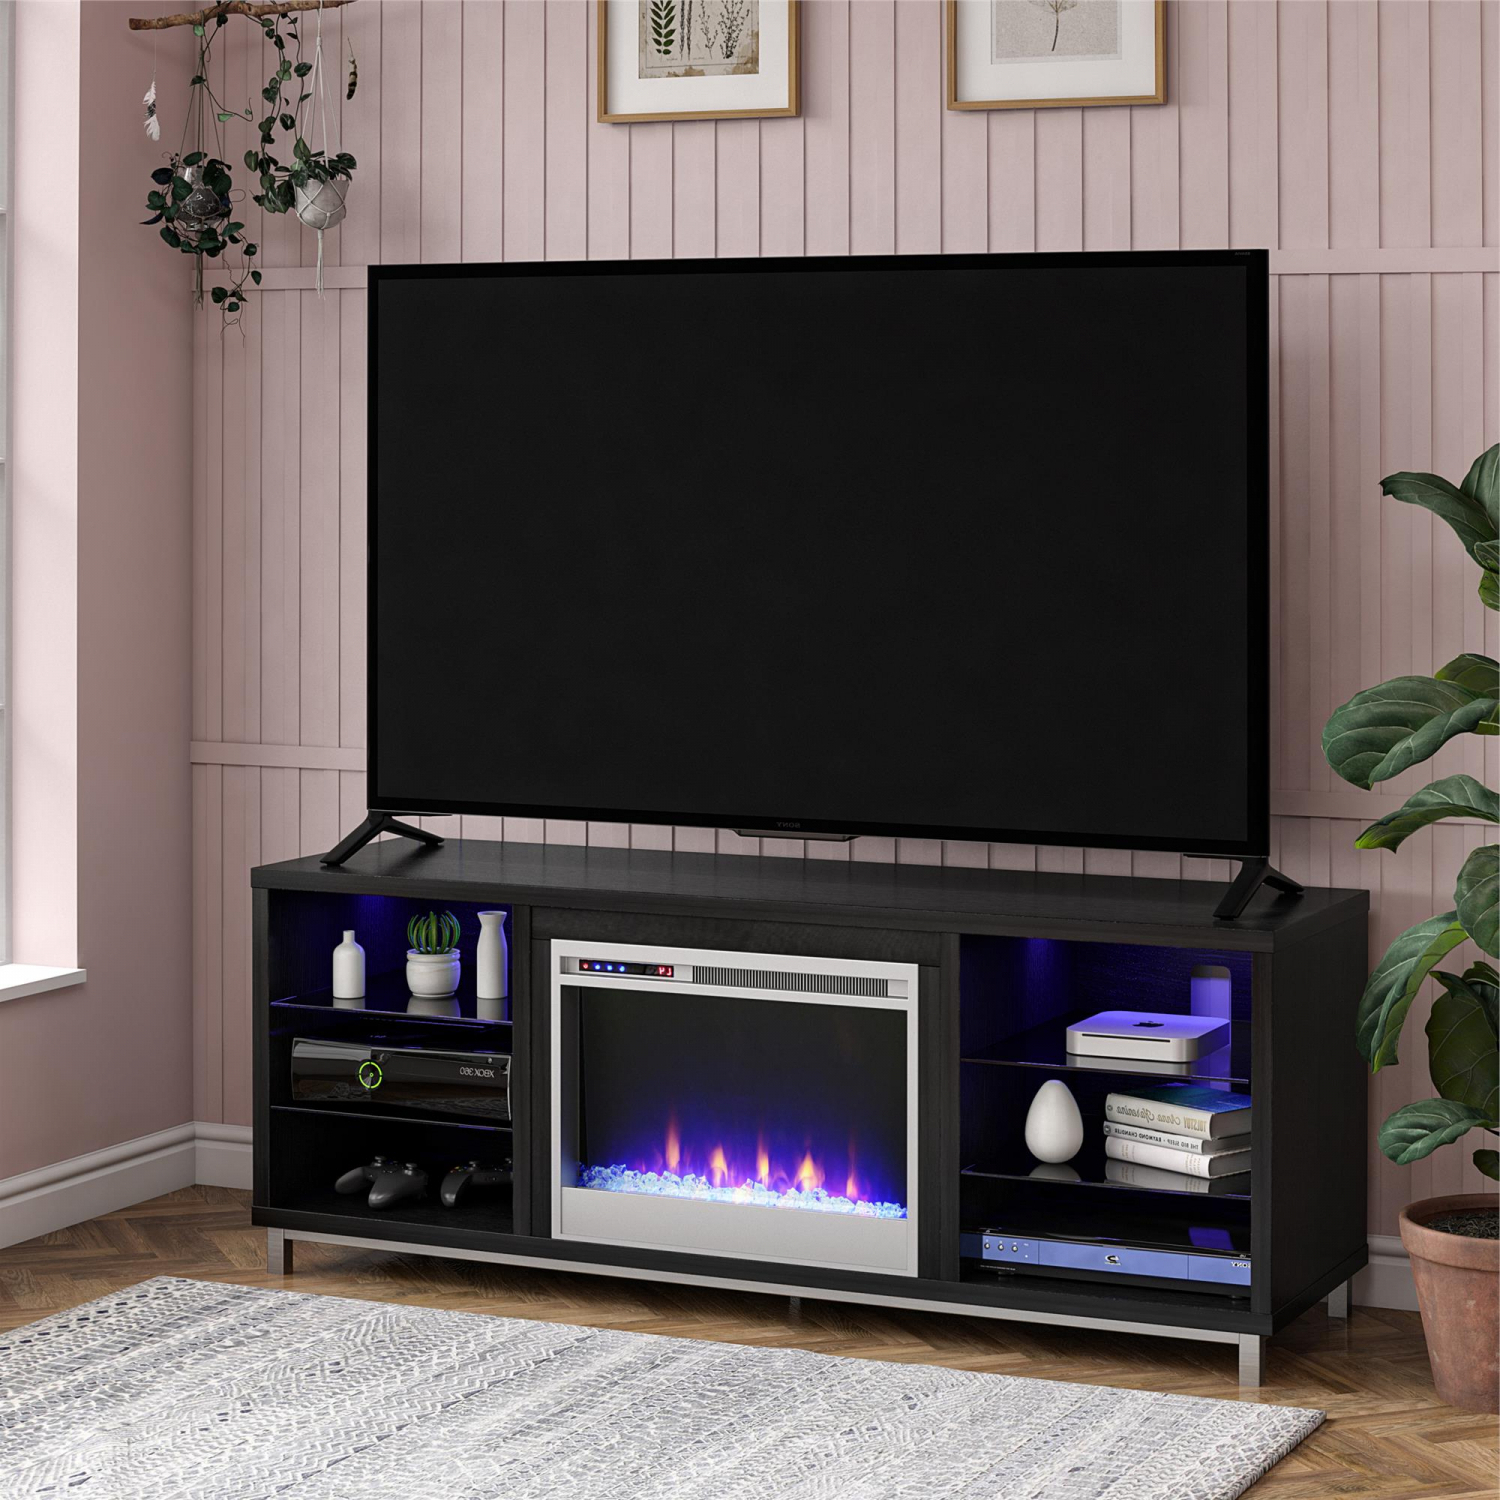 """Well Liked Electric Lumina Fireplace Tv Stand For Tvs Up To 70 Wide With Lorraine Tv Stands For Tvs Up To 70"""" (View 5 of 25)"""